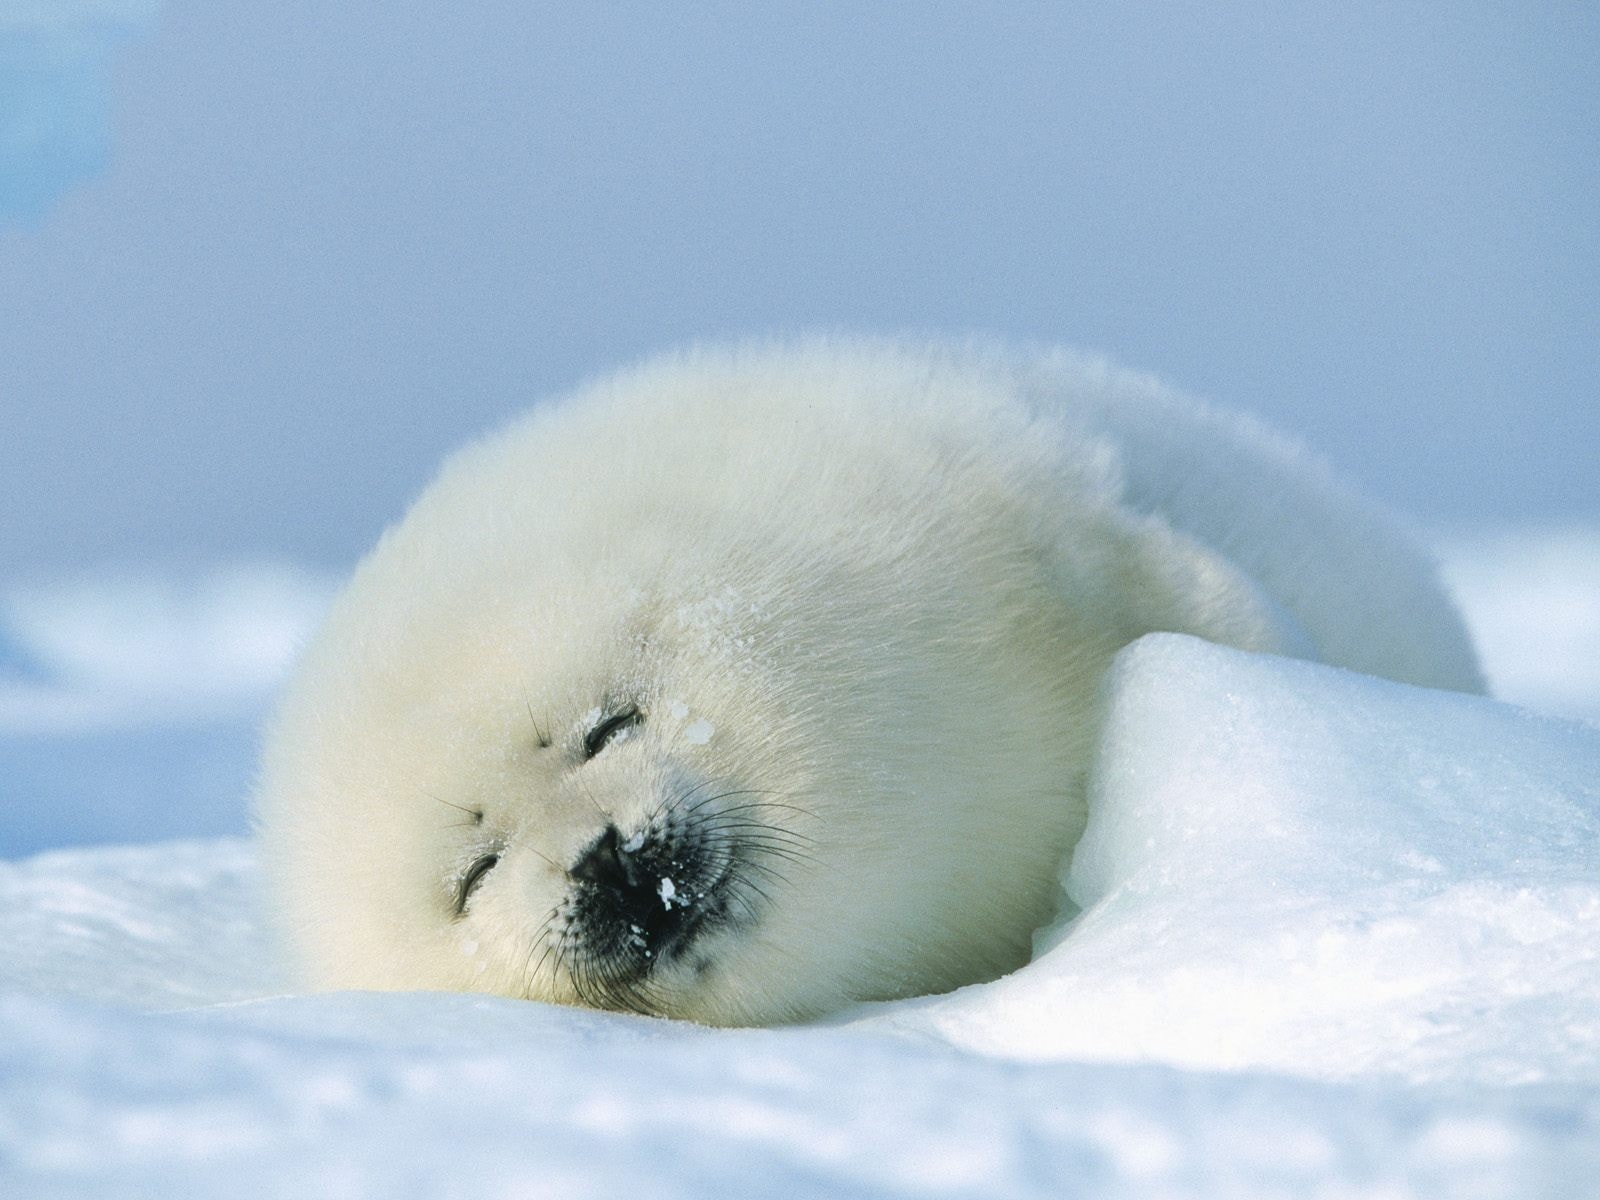 Harp seal HQ wallpapers